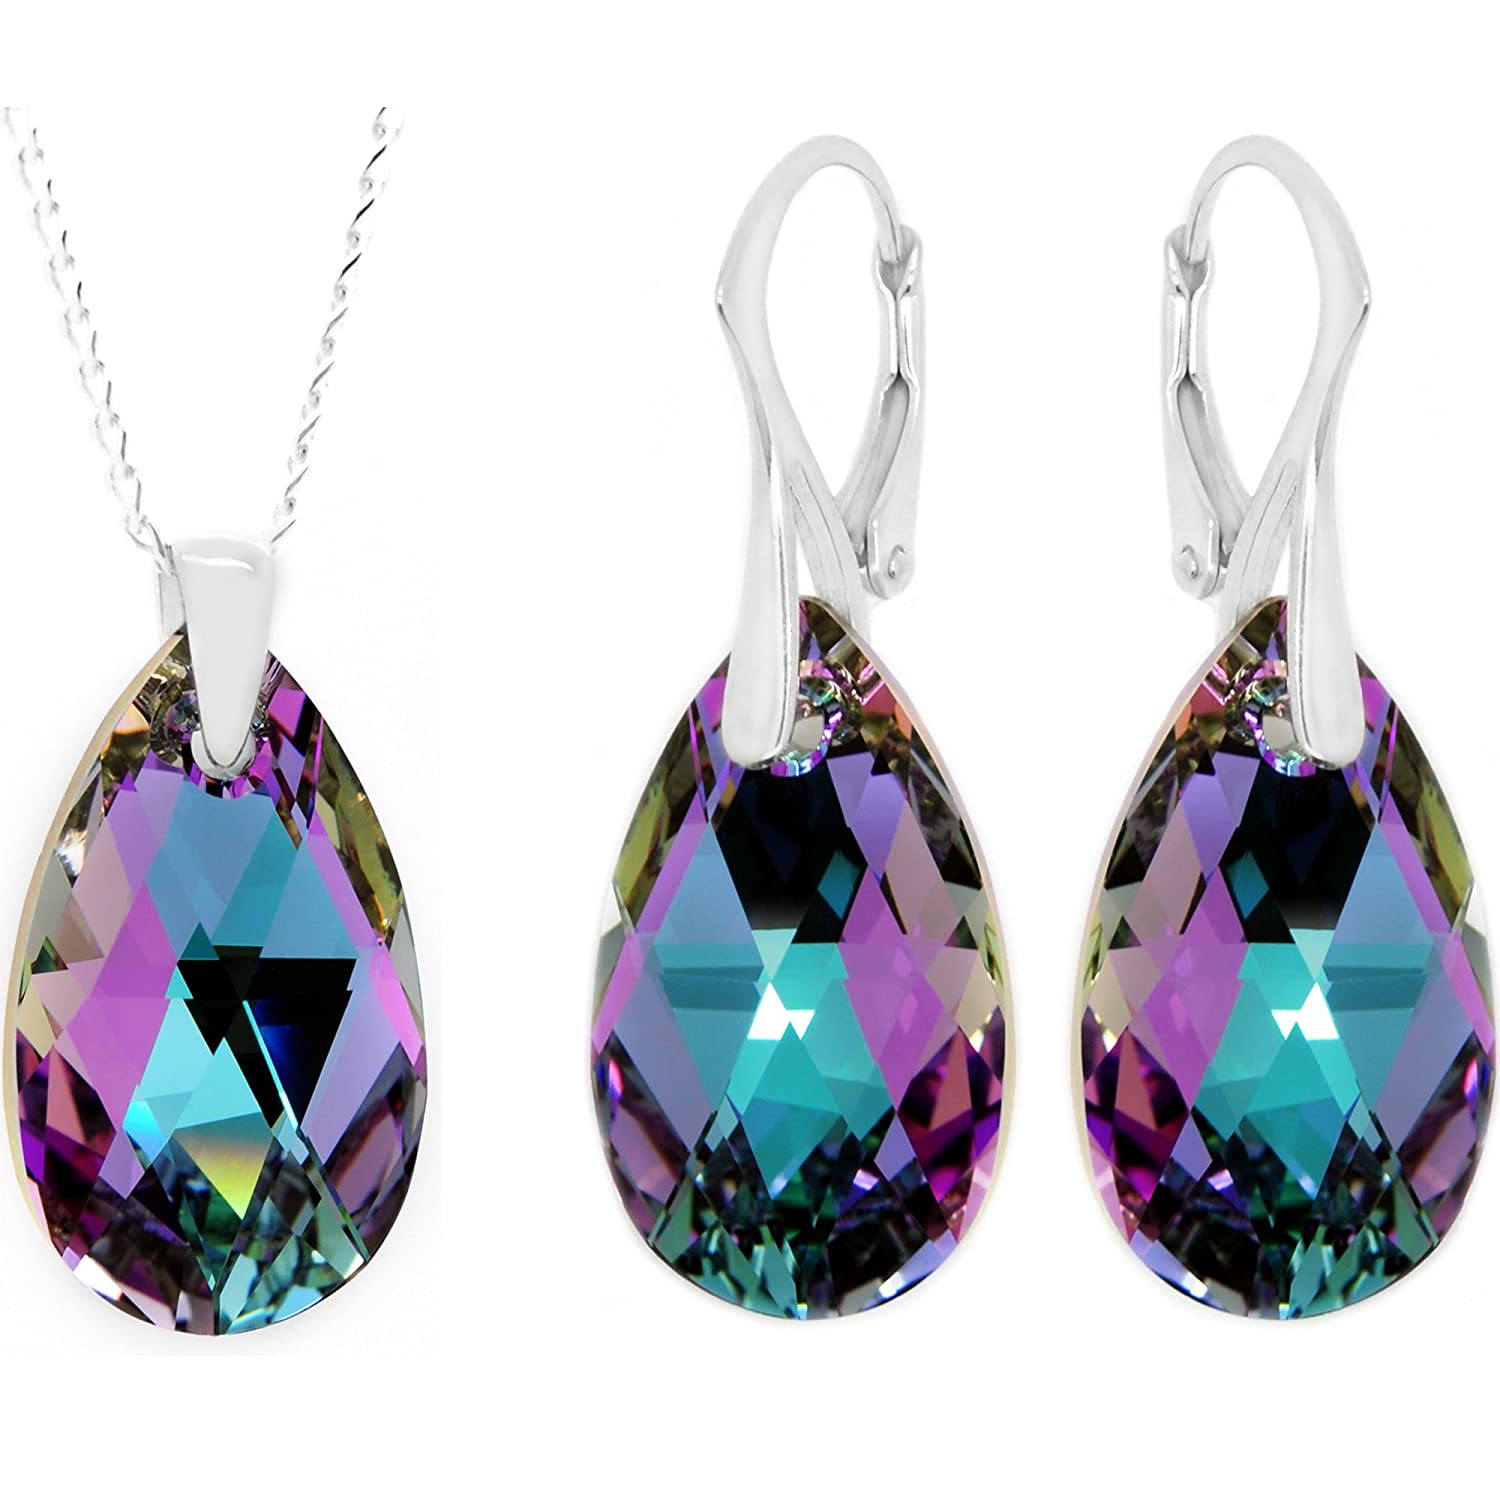 353647f1fcf51 Royal Crystals Made with Swarovski Crystals Pink Blue Sterling Silver  Pendant Necklace Earrings Set,18